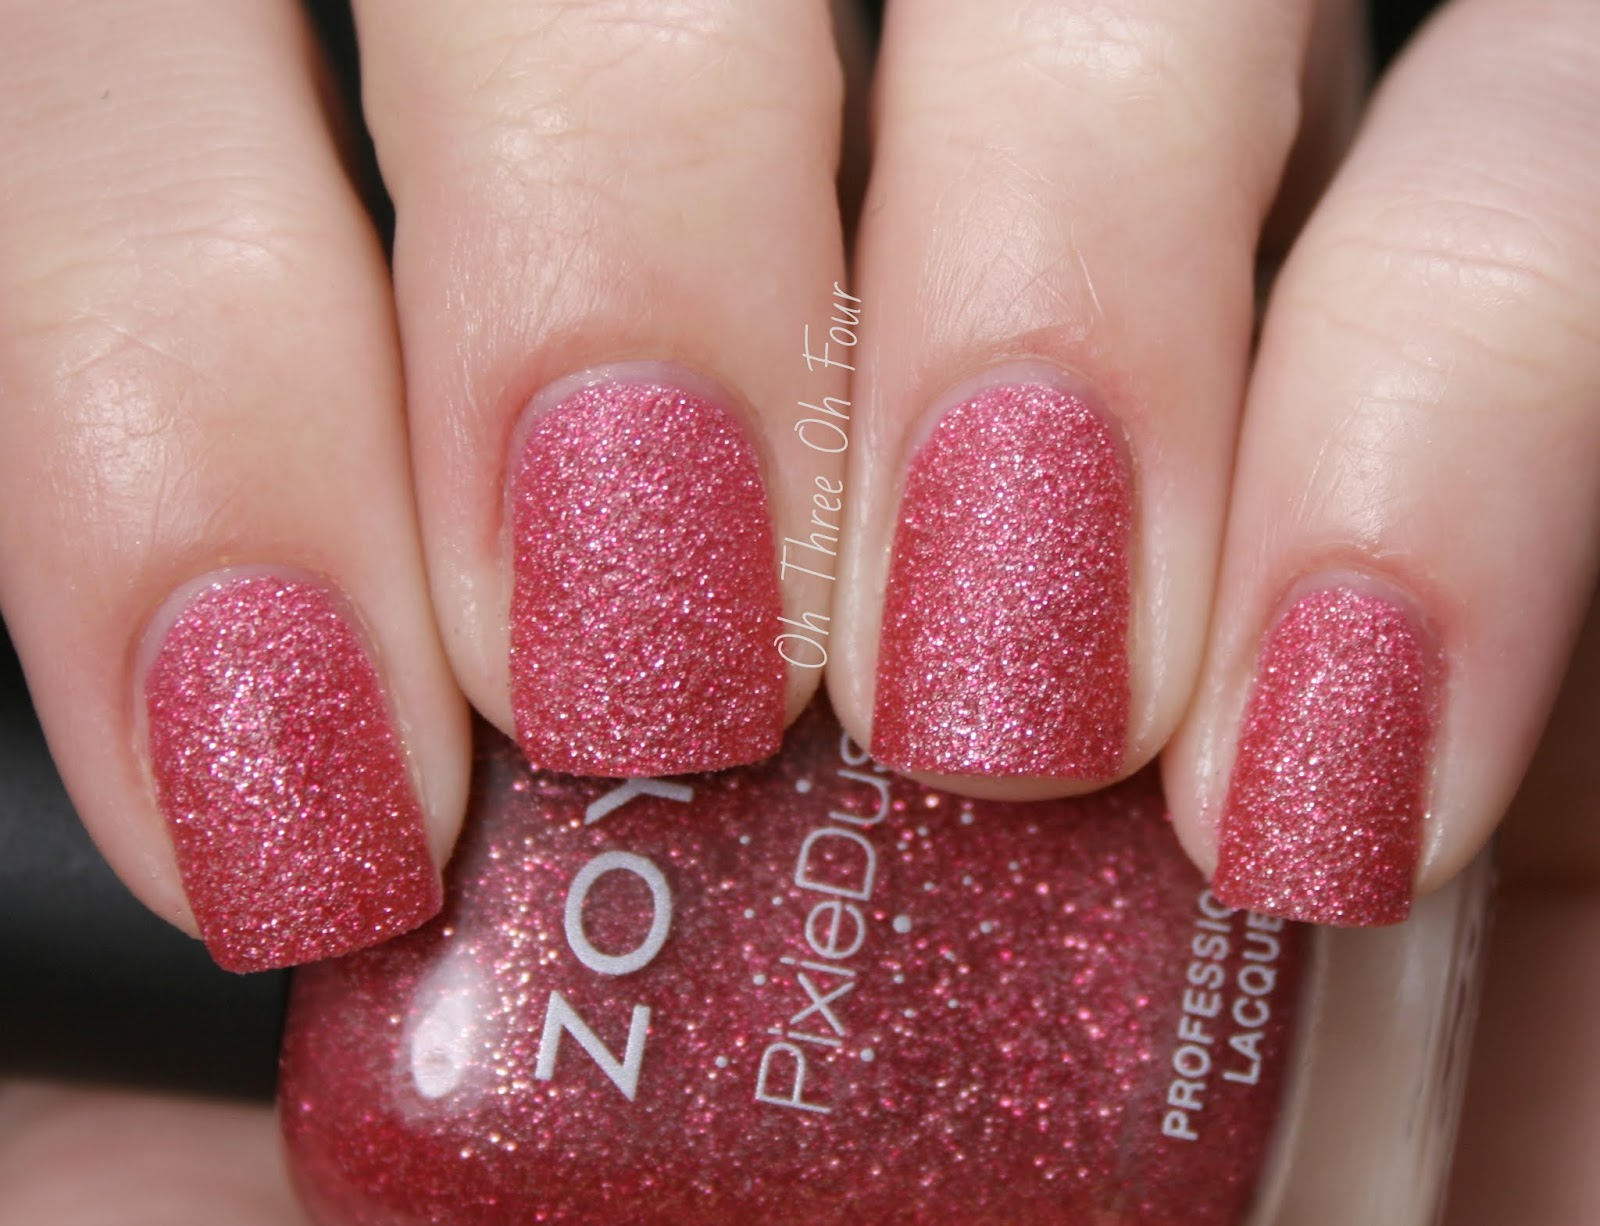 Zoya Beatrix Swatches and Nail Art  Nailpolis Museum of